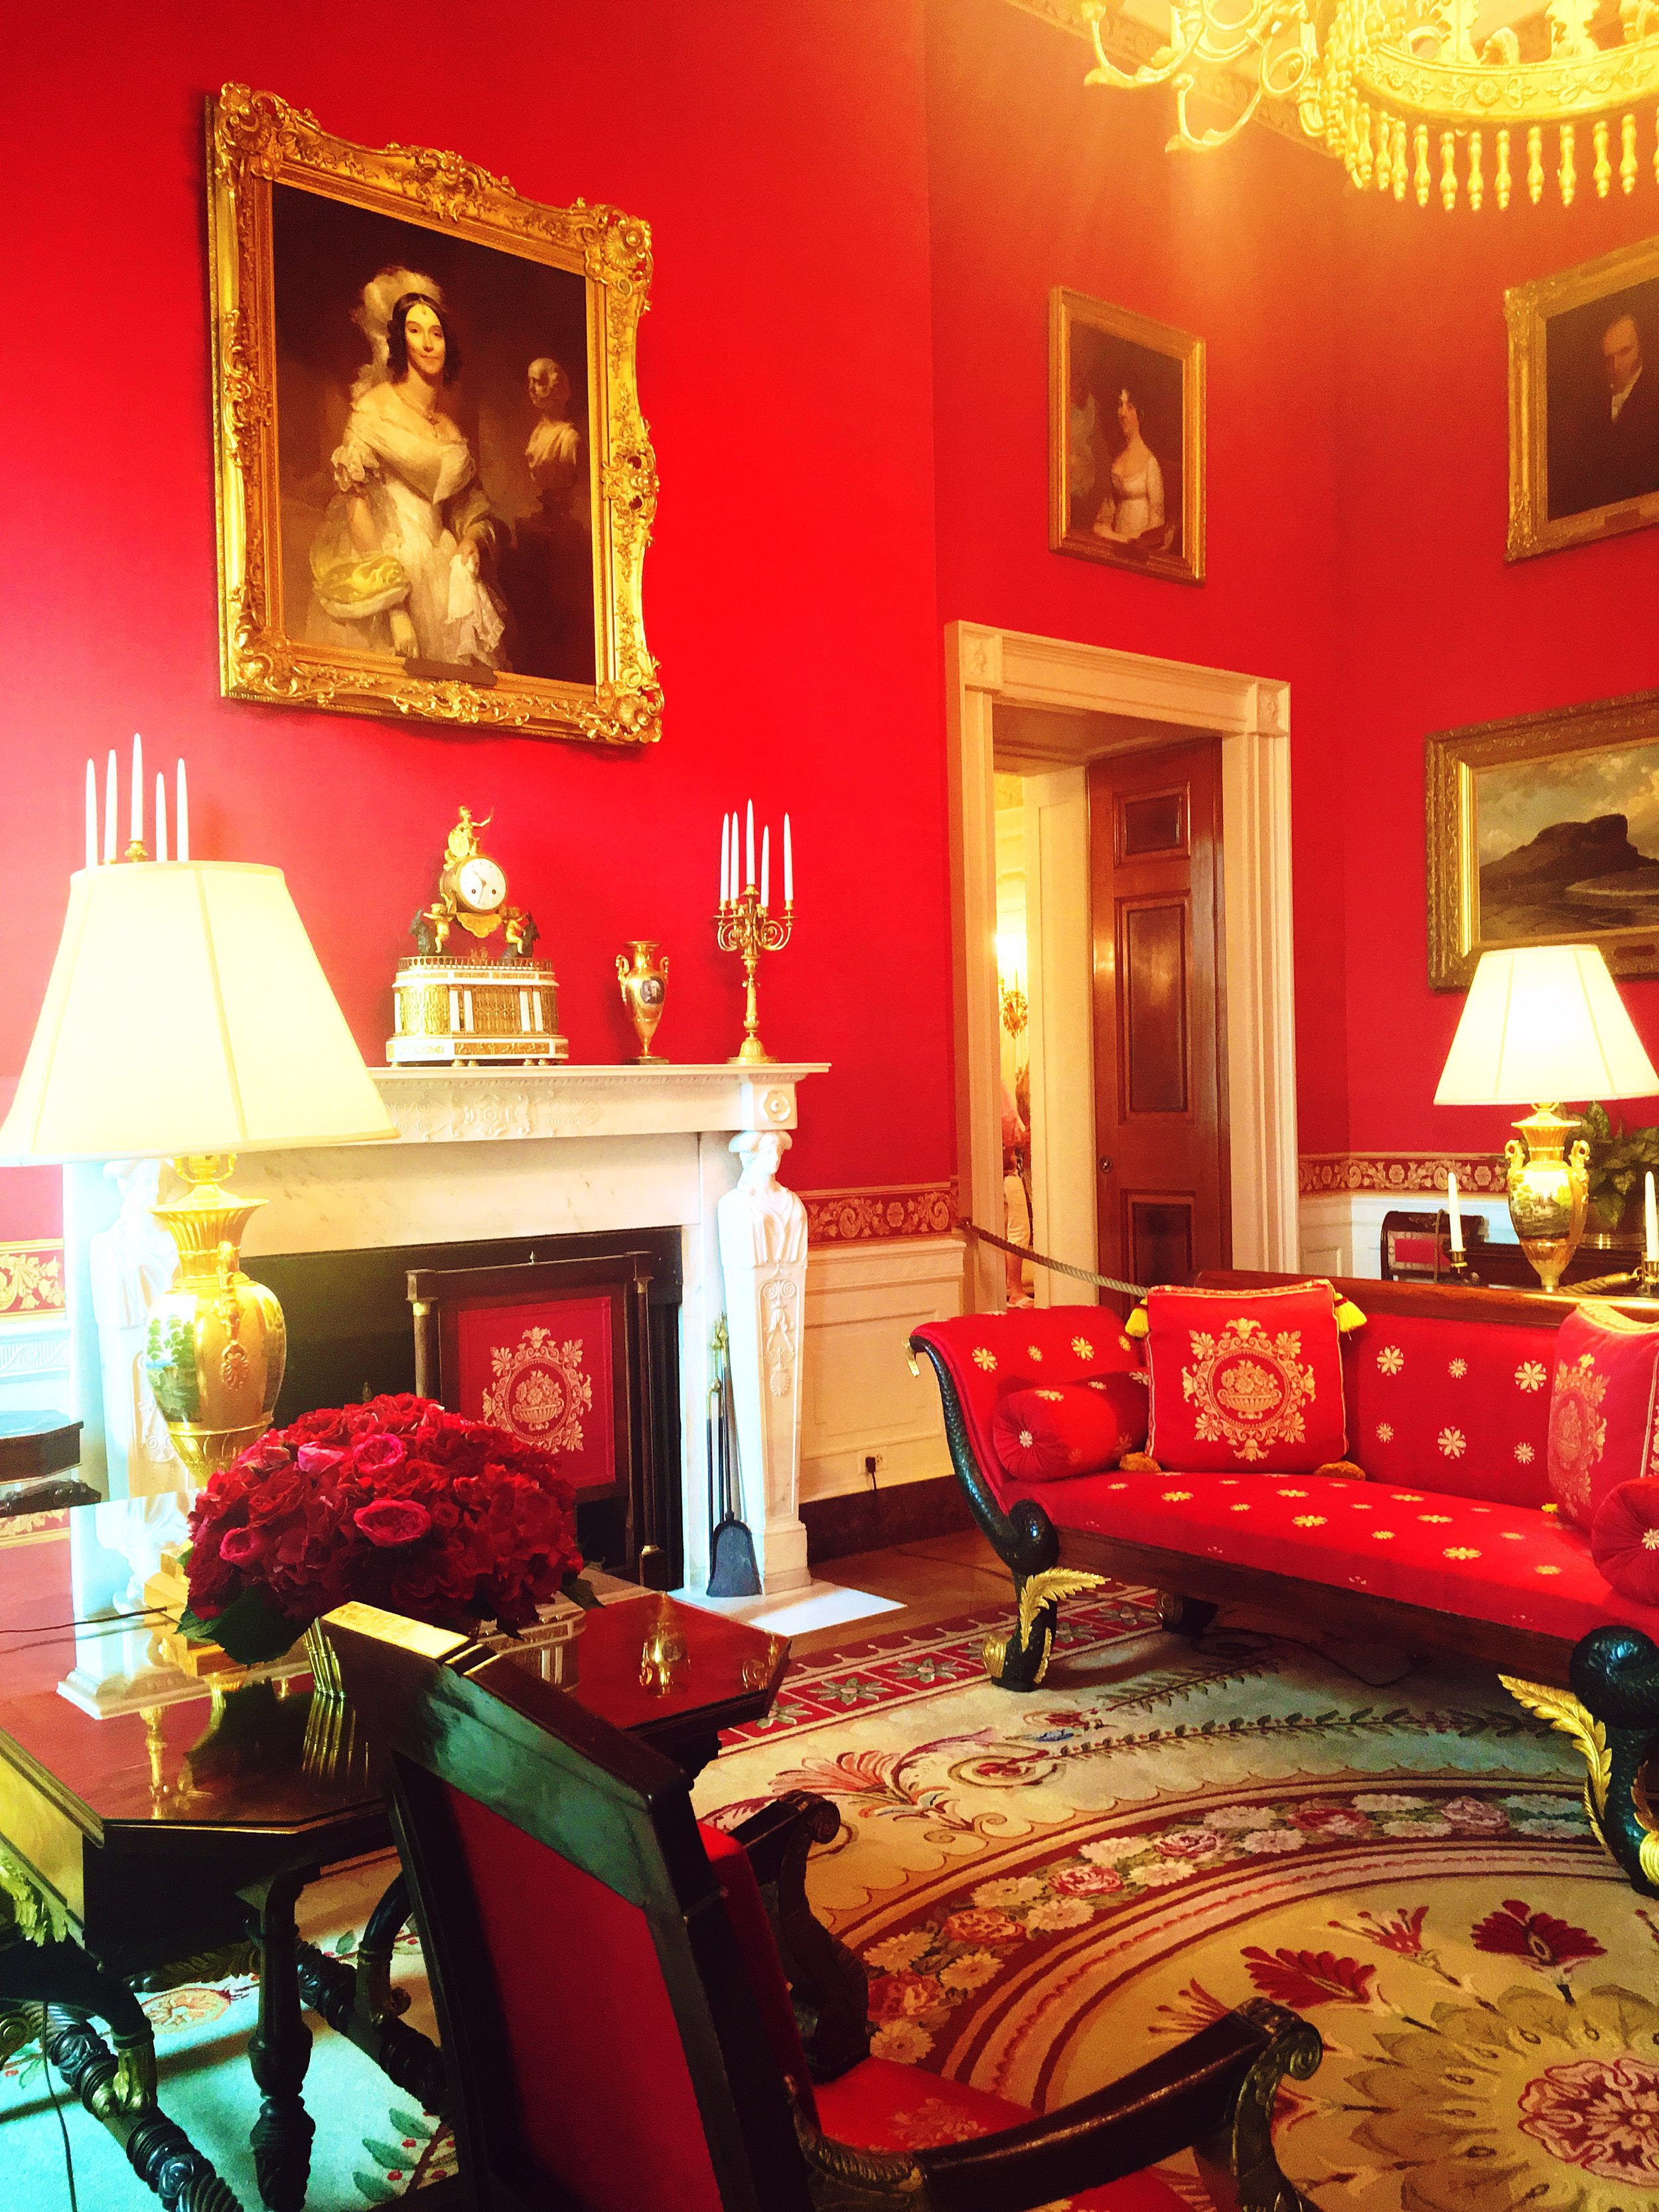 Angelica Singleton Van Buren was  that  b and knew it. Her portrait hangs above the mantle in the Red Room of the White House.